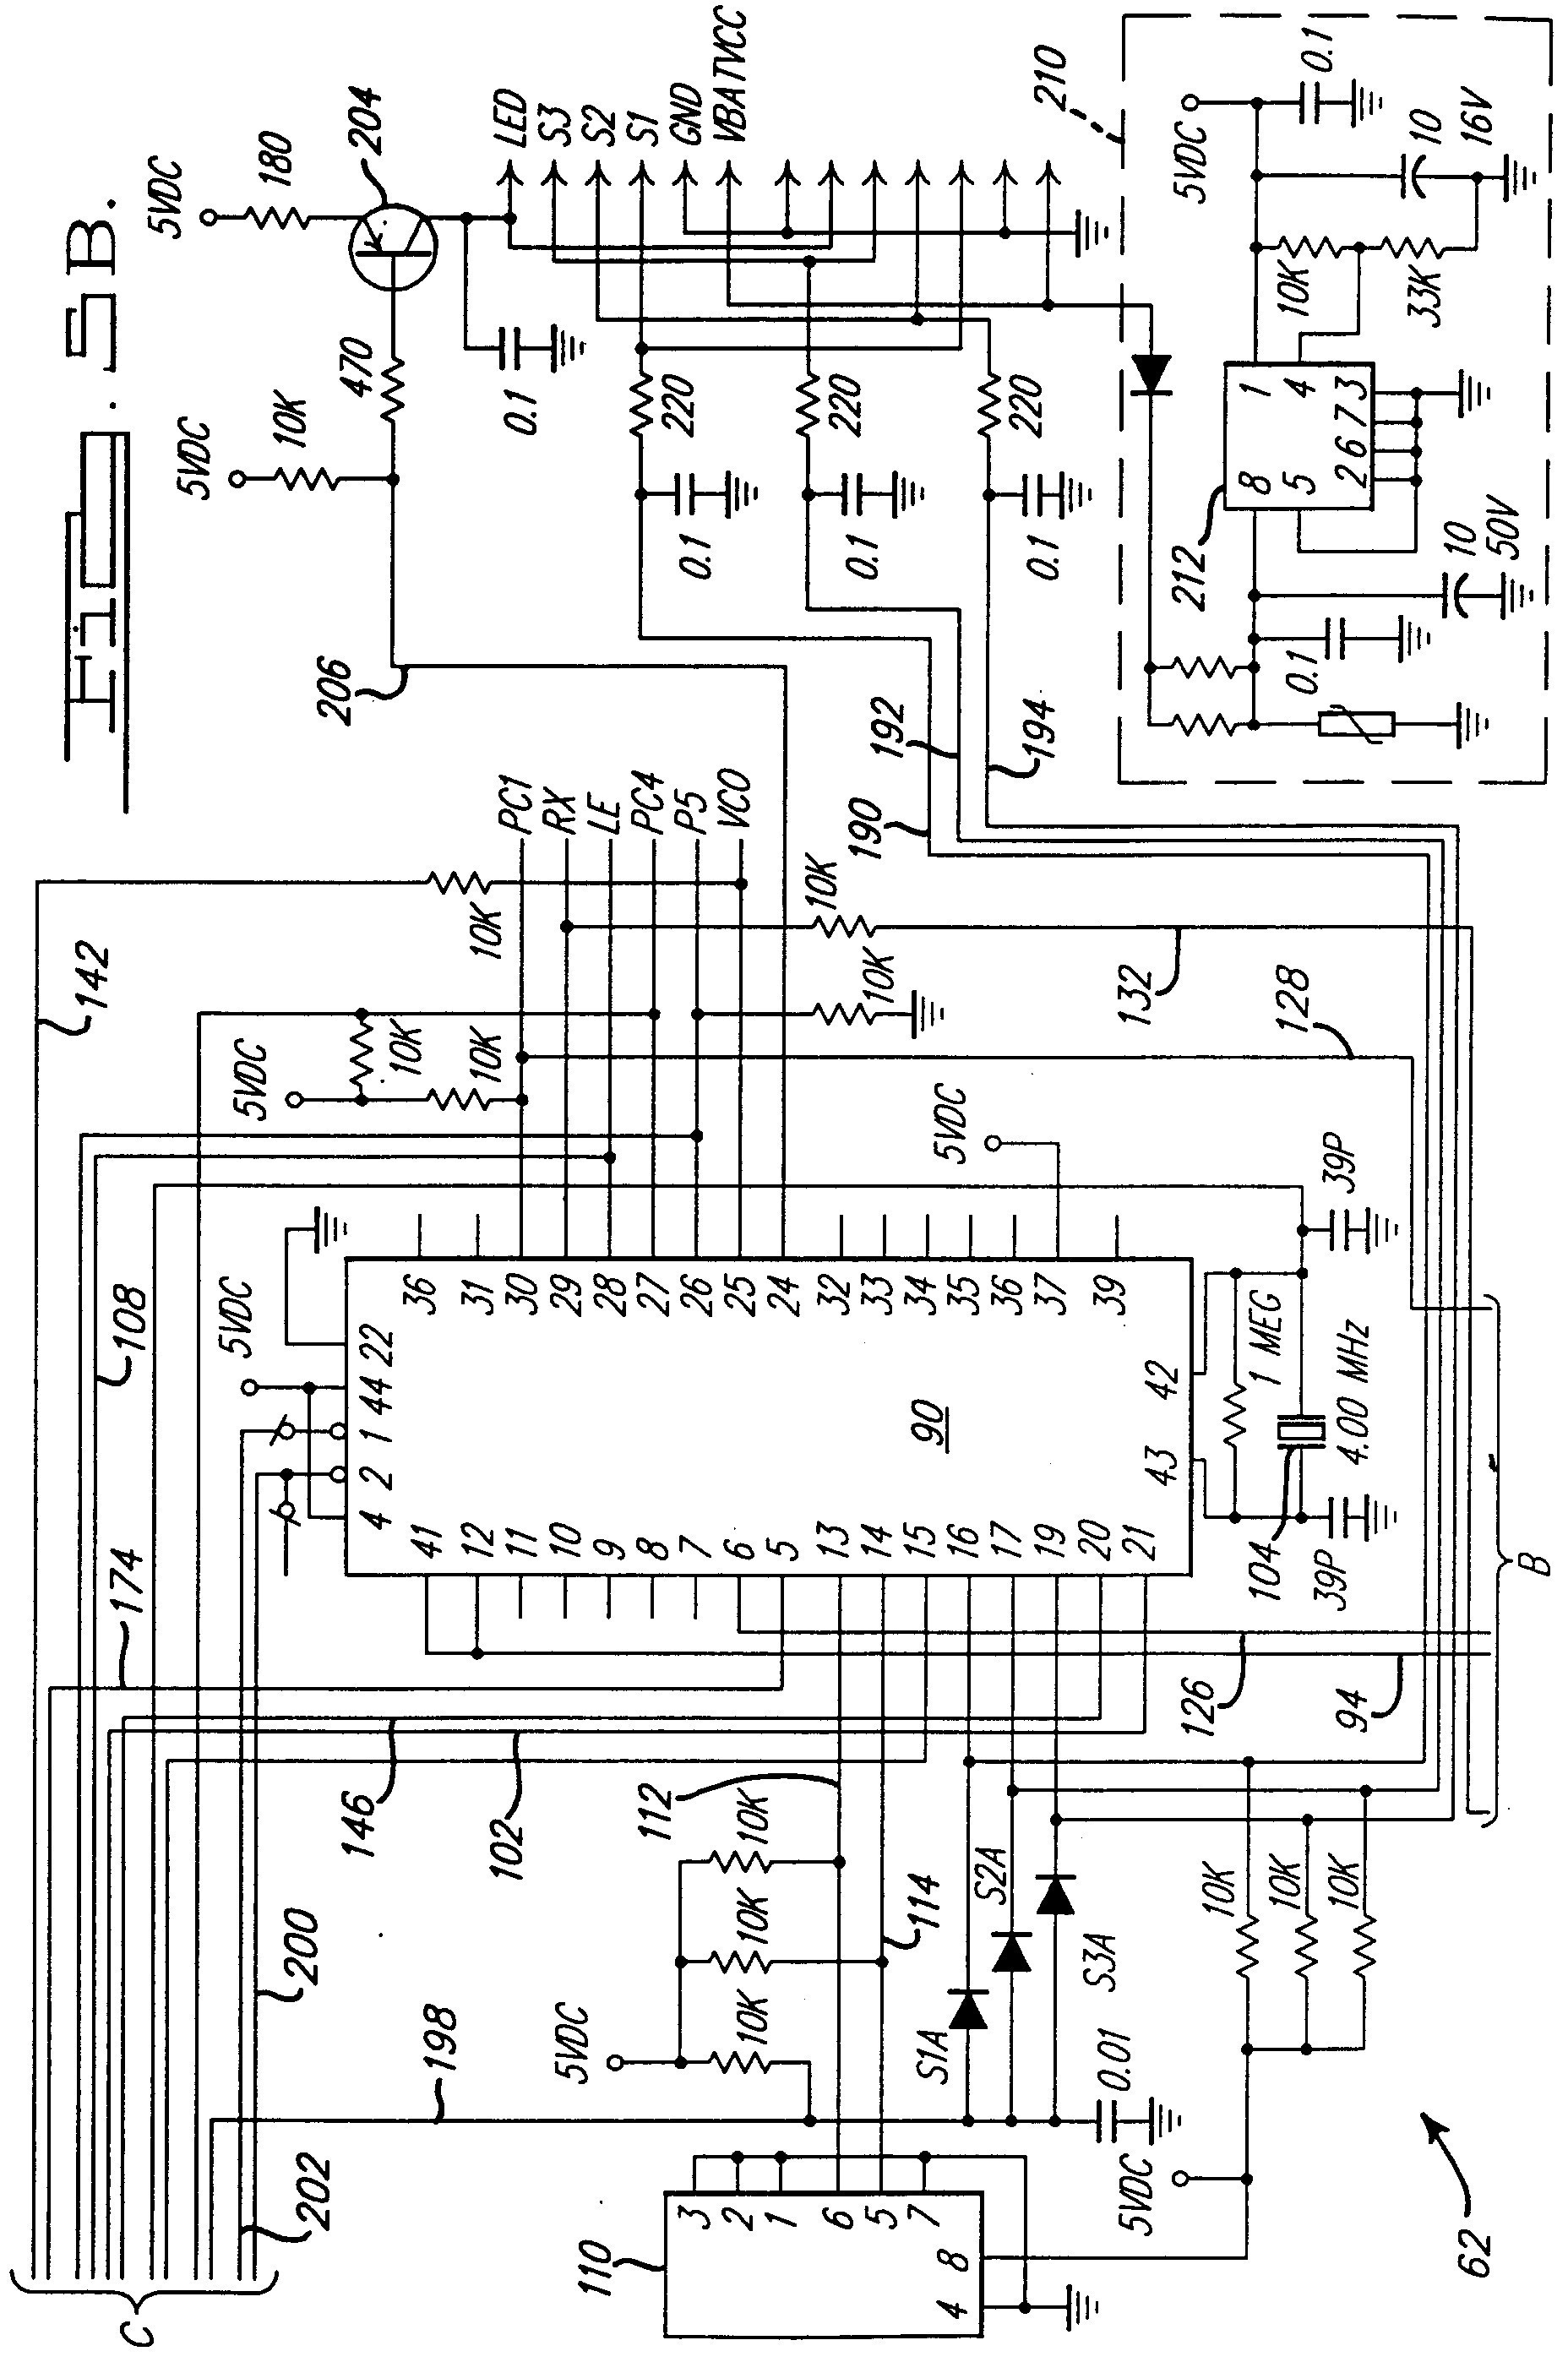 Garage Door Sensor Wiring Diagram